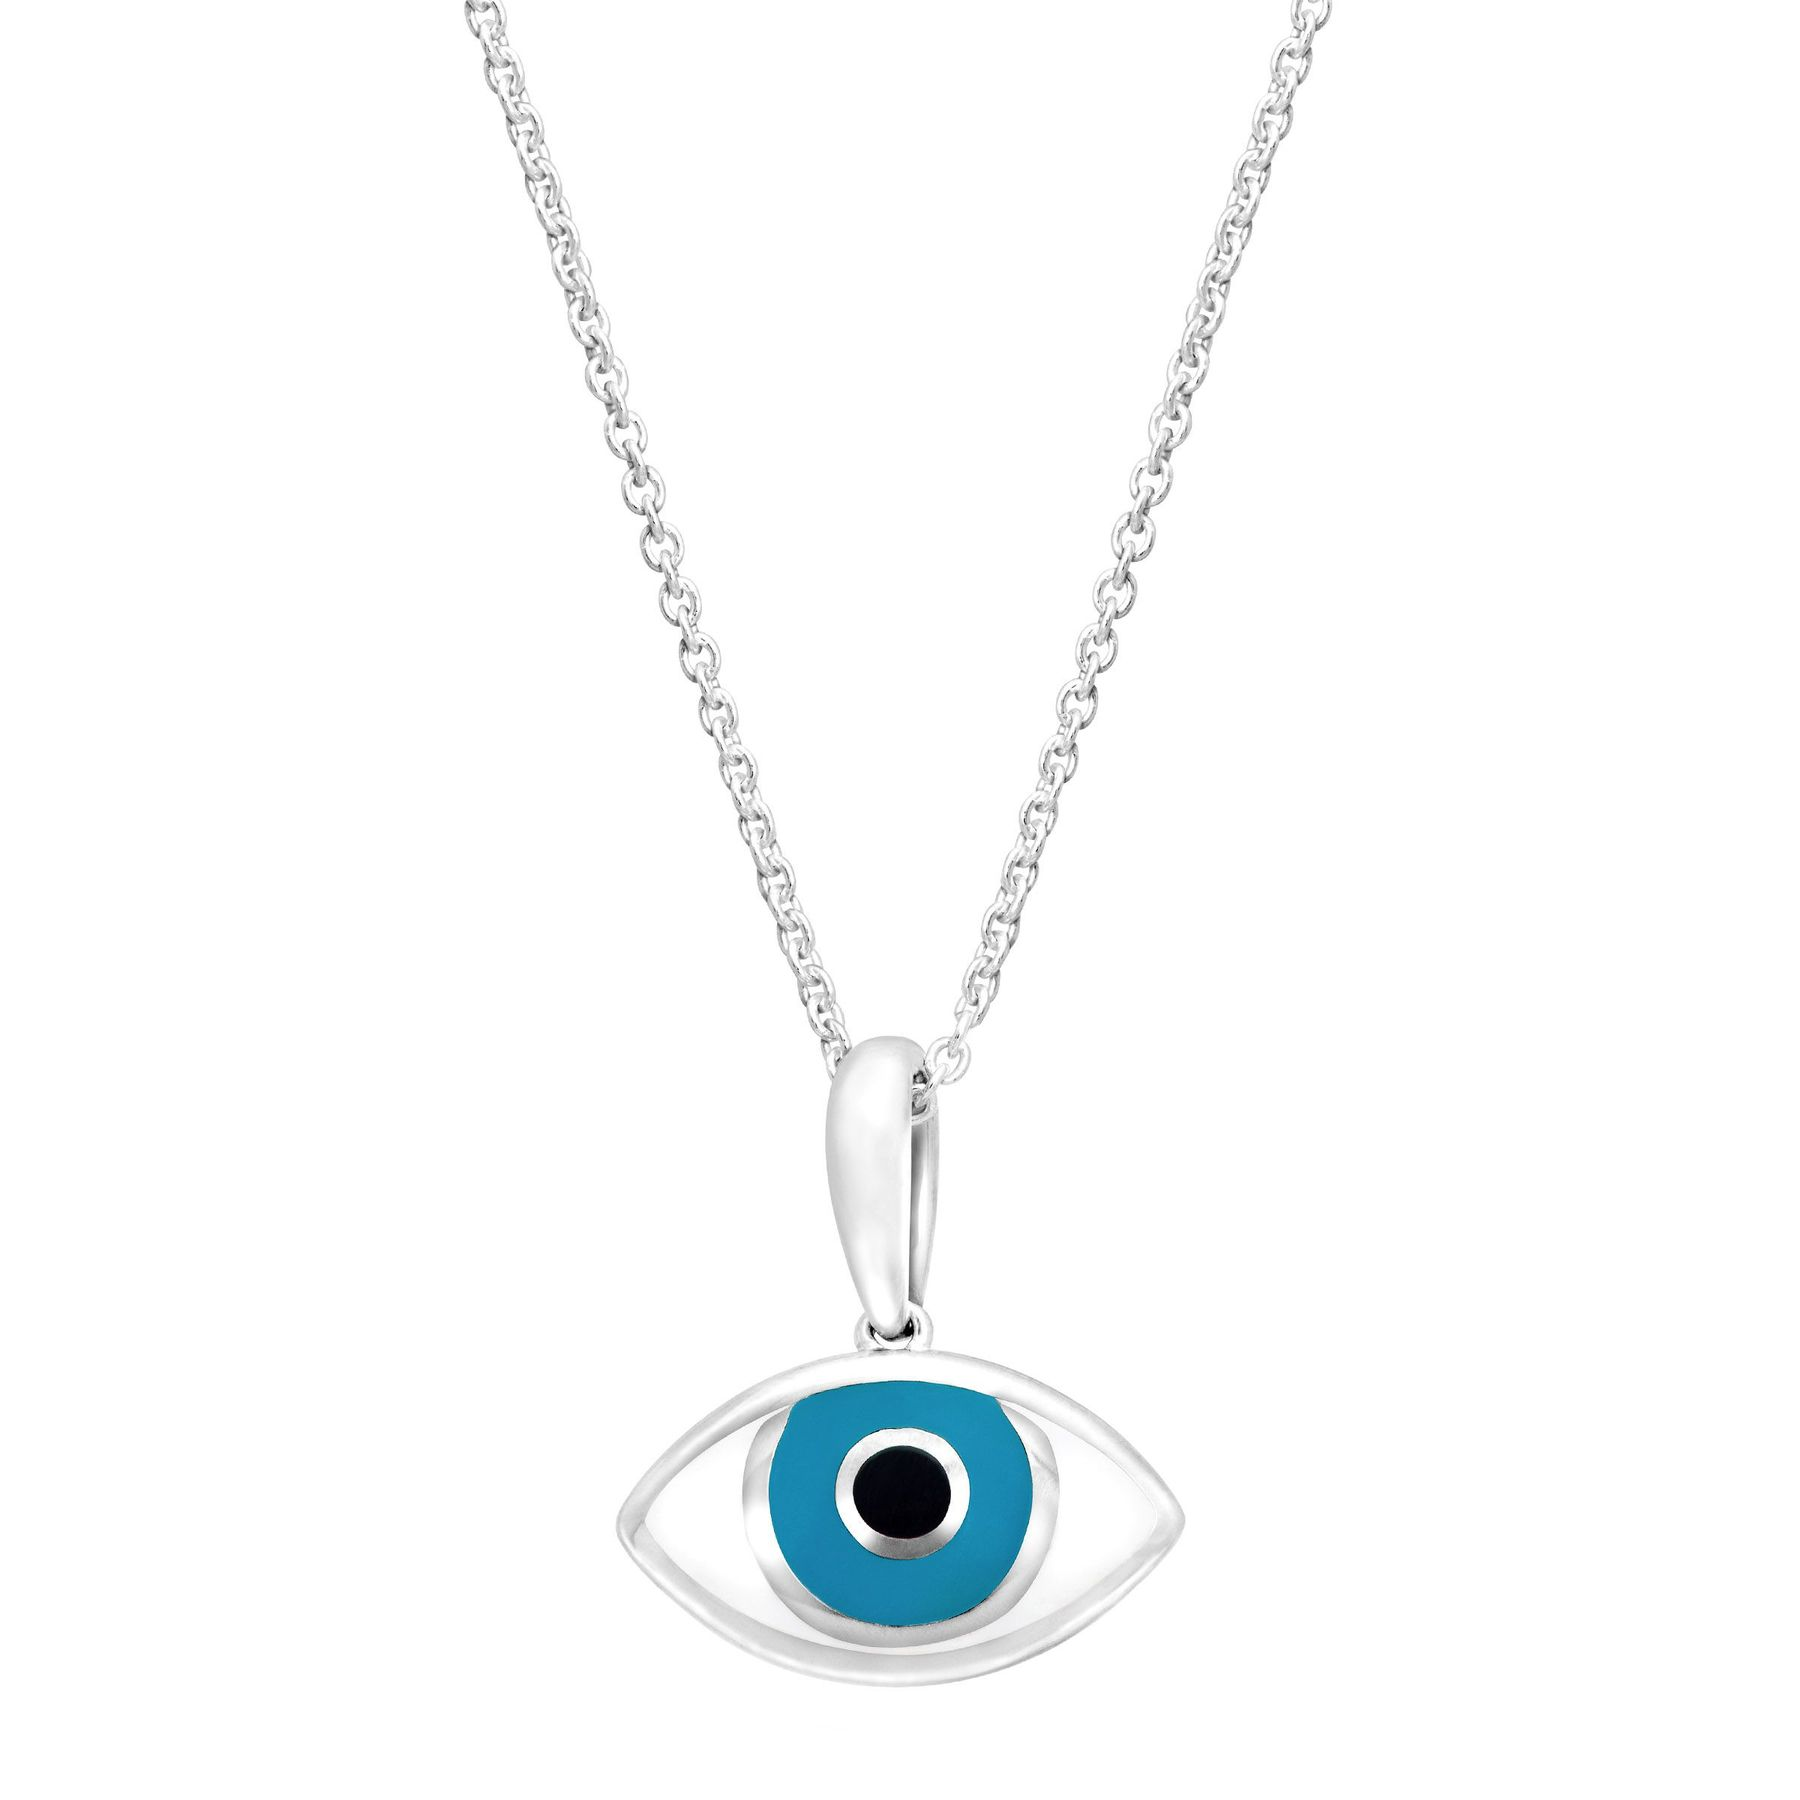 cubic necklaces zirconia jewellery eye simply zoom necklace silver sterling pendant